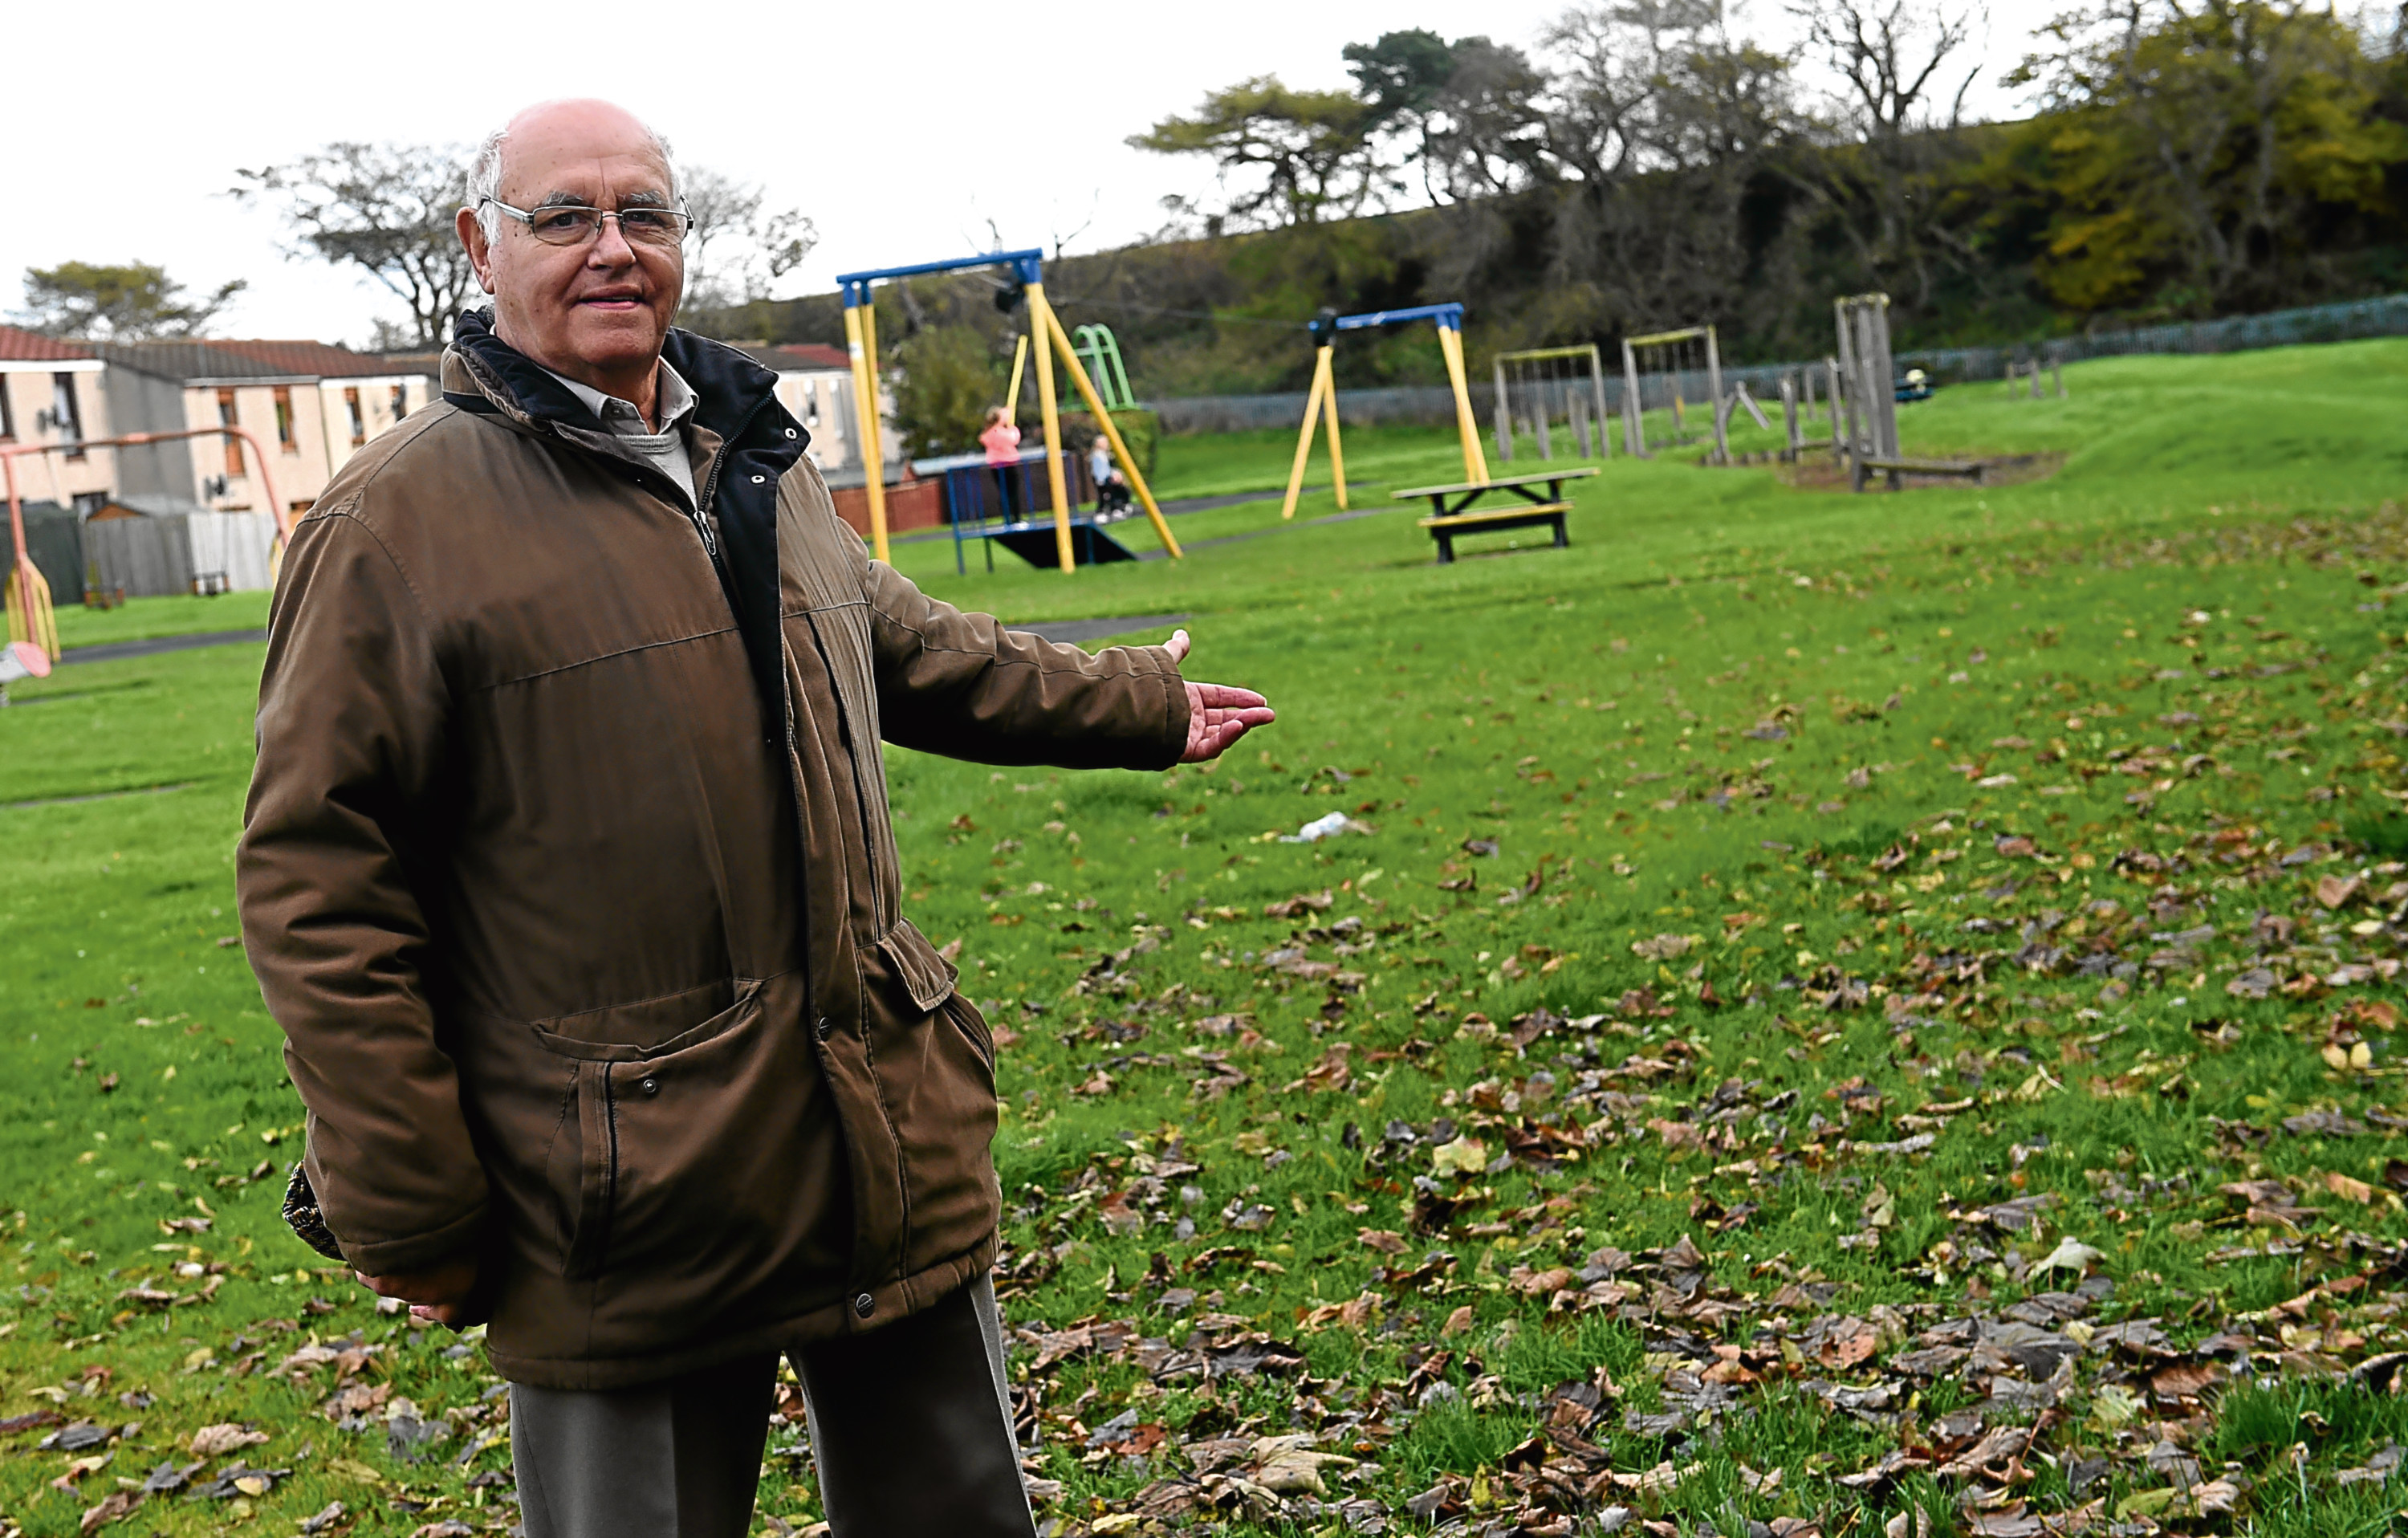 A community is planning to create a playground for pensioners in a Portlethen park in order to give older people the chance to socialise together while getting some light exercise.